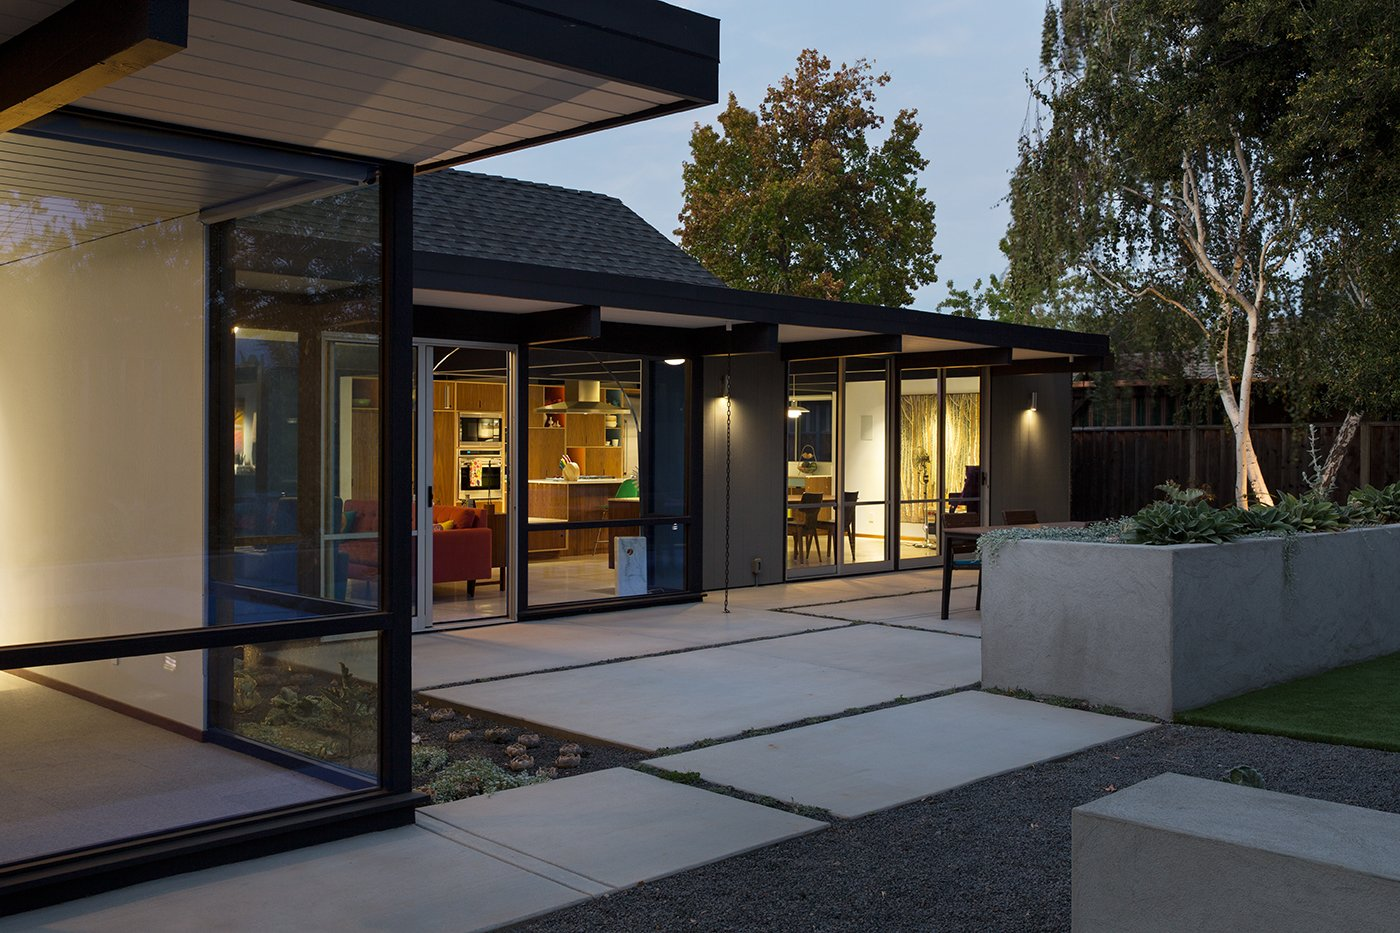 """Renewed Classic Eichler Remodel  Klopf Architecture, Growsgreen Landscape Design, and Flegel's Construction partnered to bring this mid-century atrium Eichler home up to 21st century standards. Together with the owners, Geoff Campen and the Klopf Architecture team carefully integrated elements and ideas from the mid-century period without making the space seem dated. They entrusted Klopf Architecture to respectfully expand and update the home, while still keeping it """"classic"""". The Klopf team helped them open up the kitchen, dining, and living spaces into one flowing great room, expand the master suite, replace the kitchen and bathrooms, and provide additional features like an office and powder room, all while maintaining the mid-century modern style of this Silicon Valley home.  Tagged: Exterior, Mid-Century Building Type, and House.  Klopf Architecture by Klopf Architecture"""